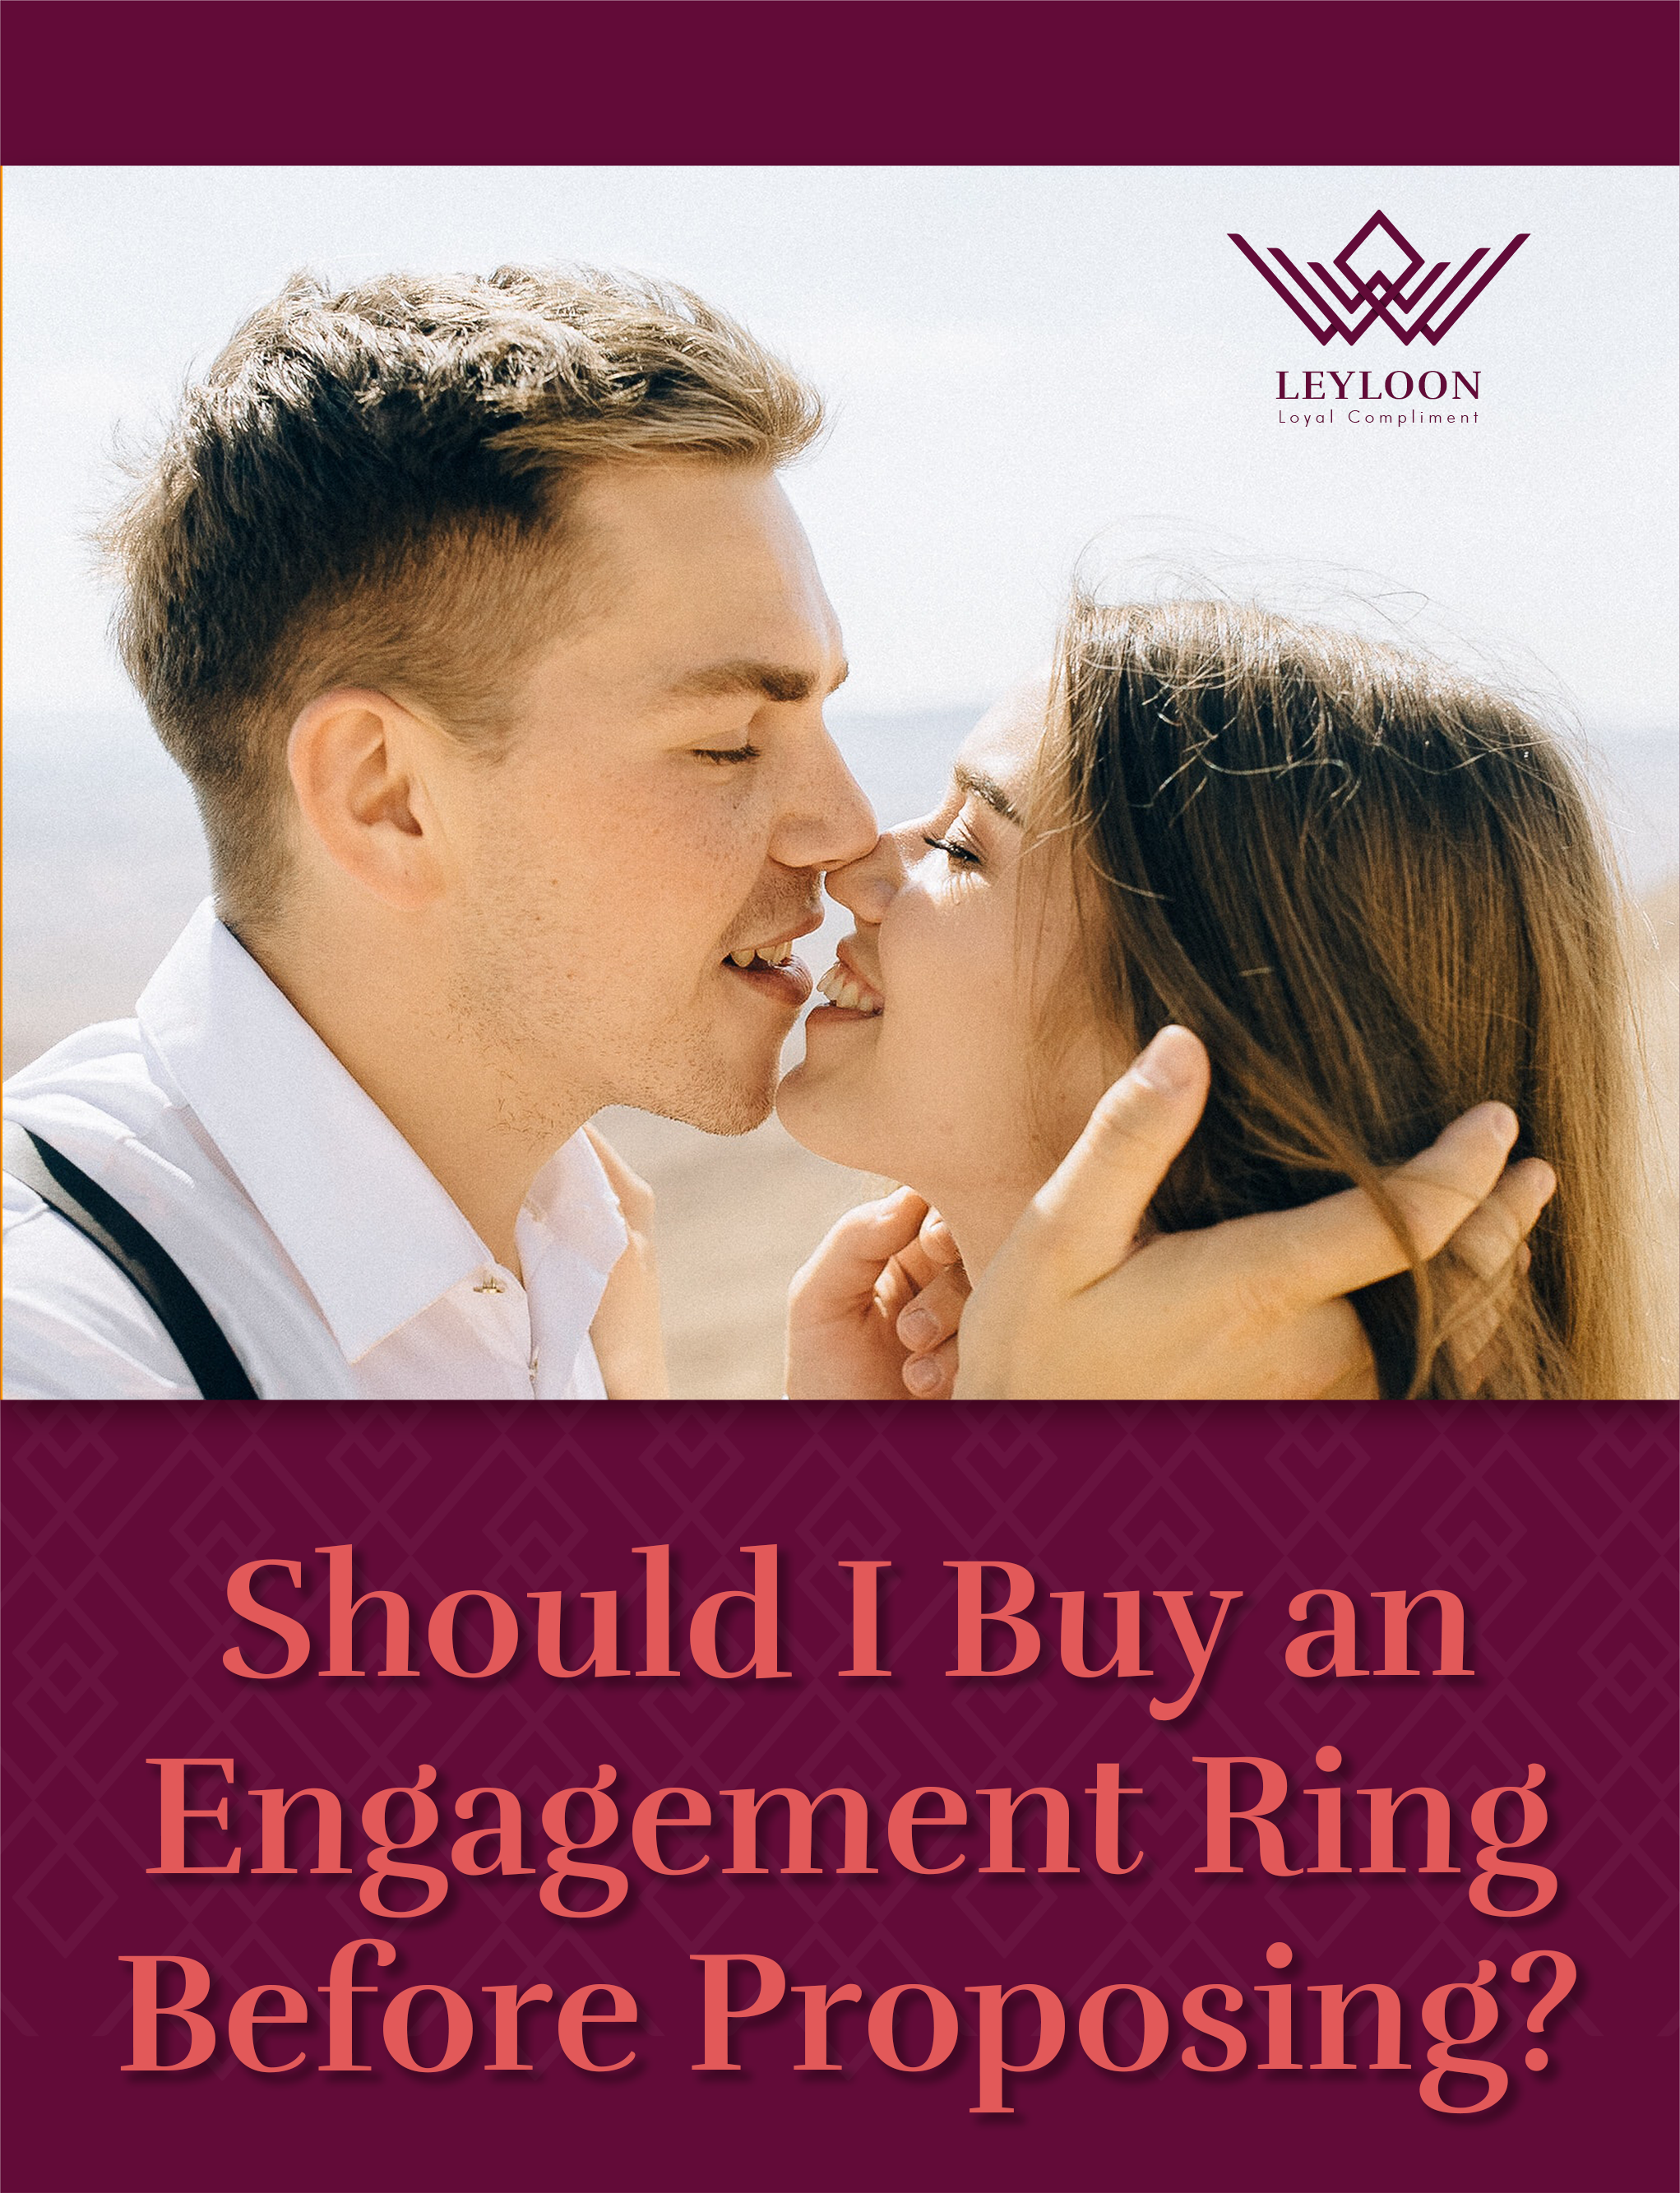 Should I Buy an Engagement Ring Before Proposing?